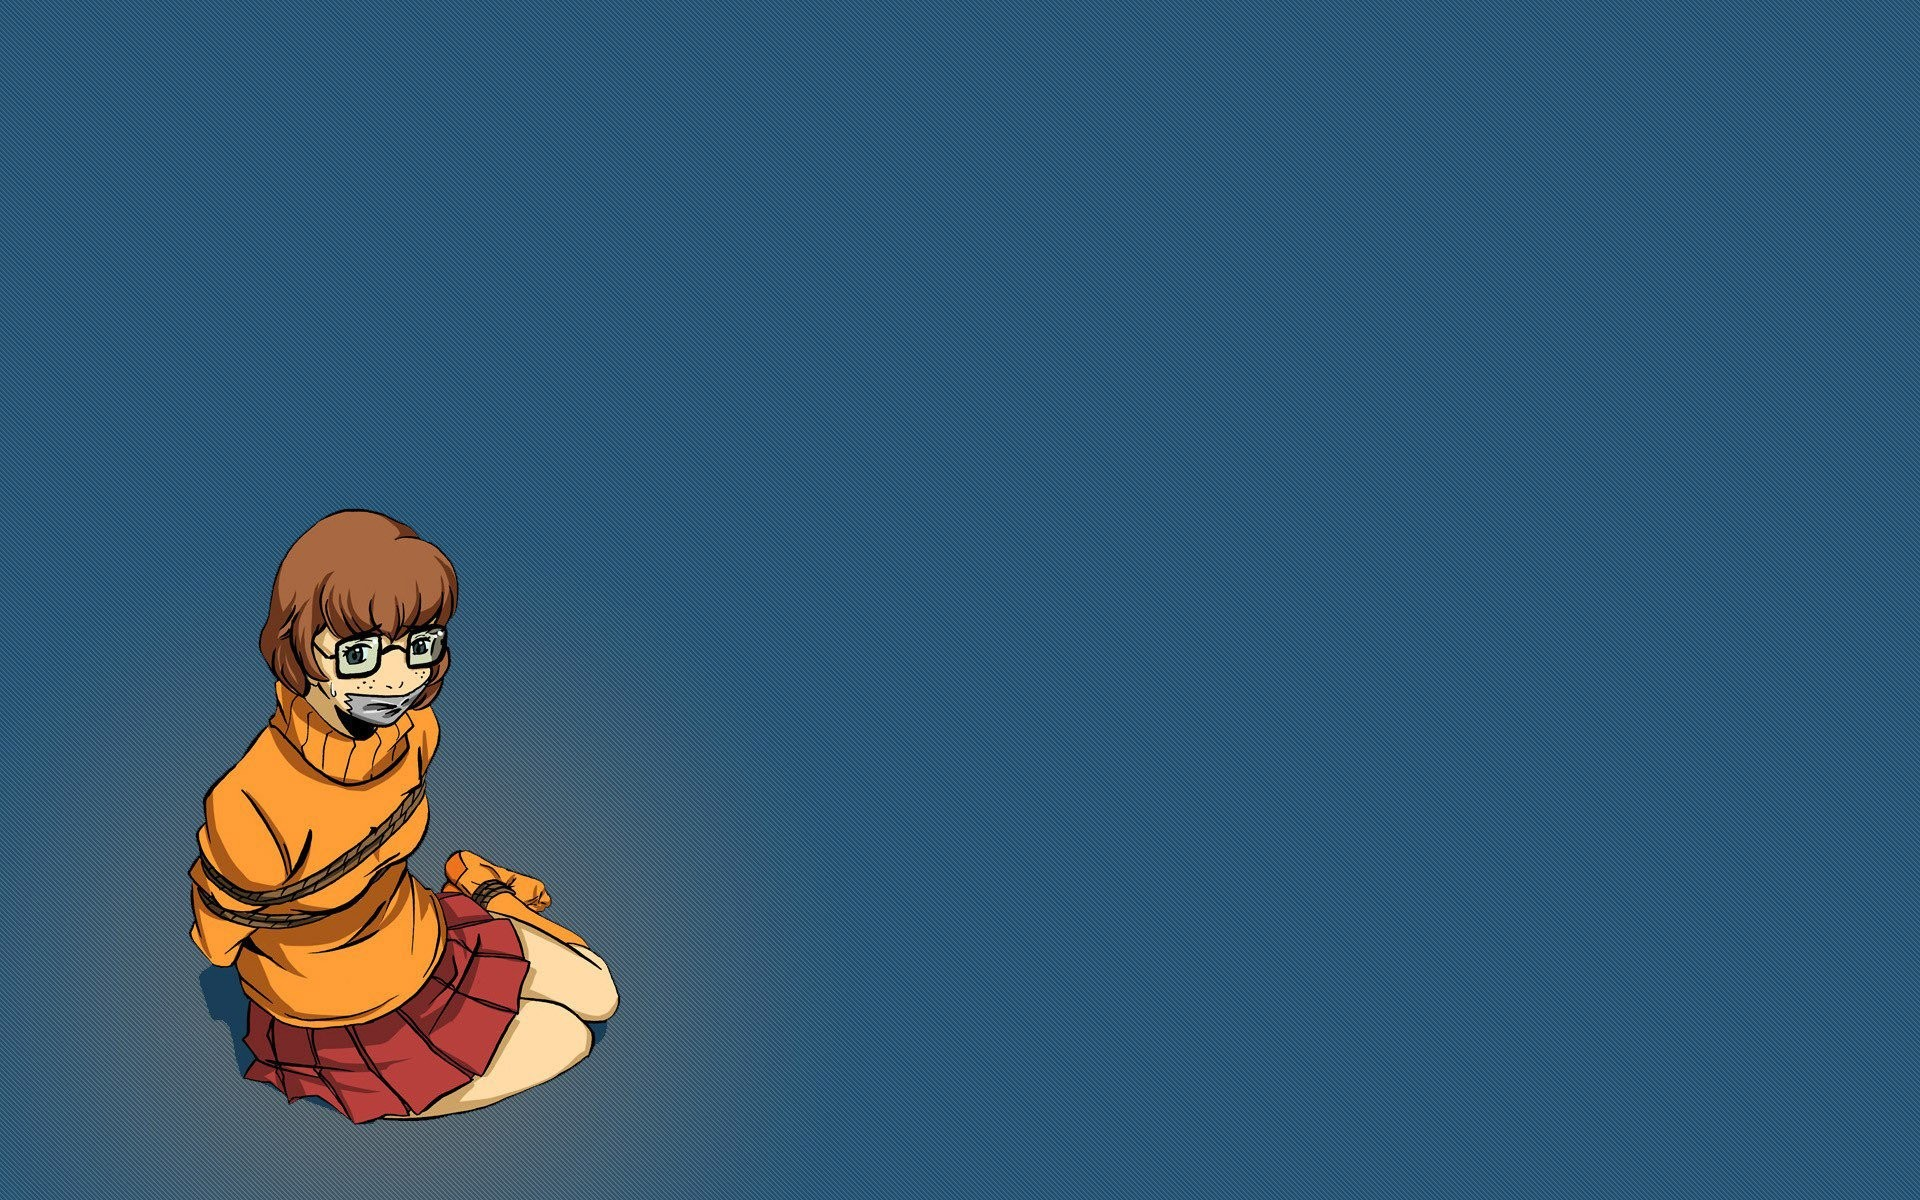 Scooby Doo Backgrounds 66 images 1920x1200